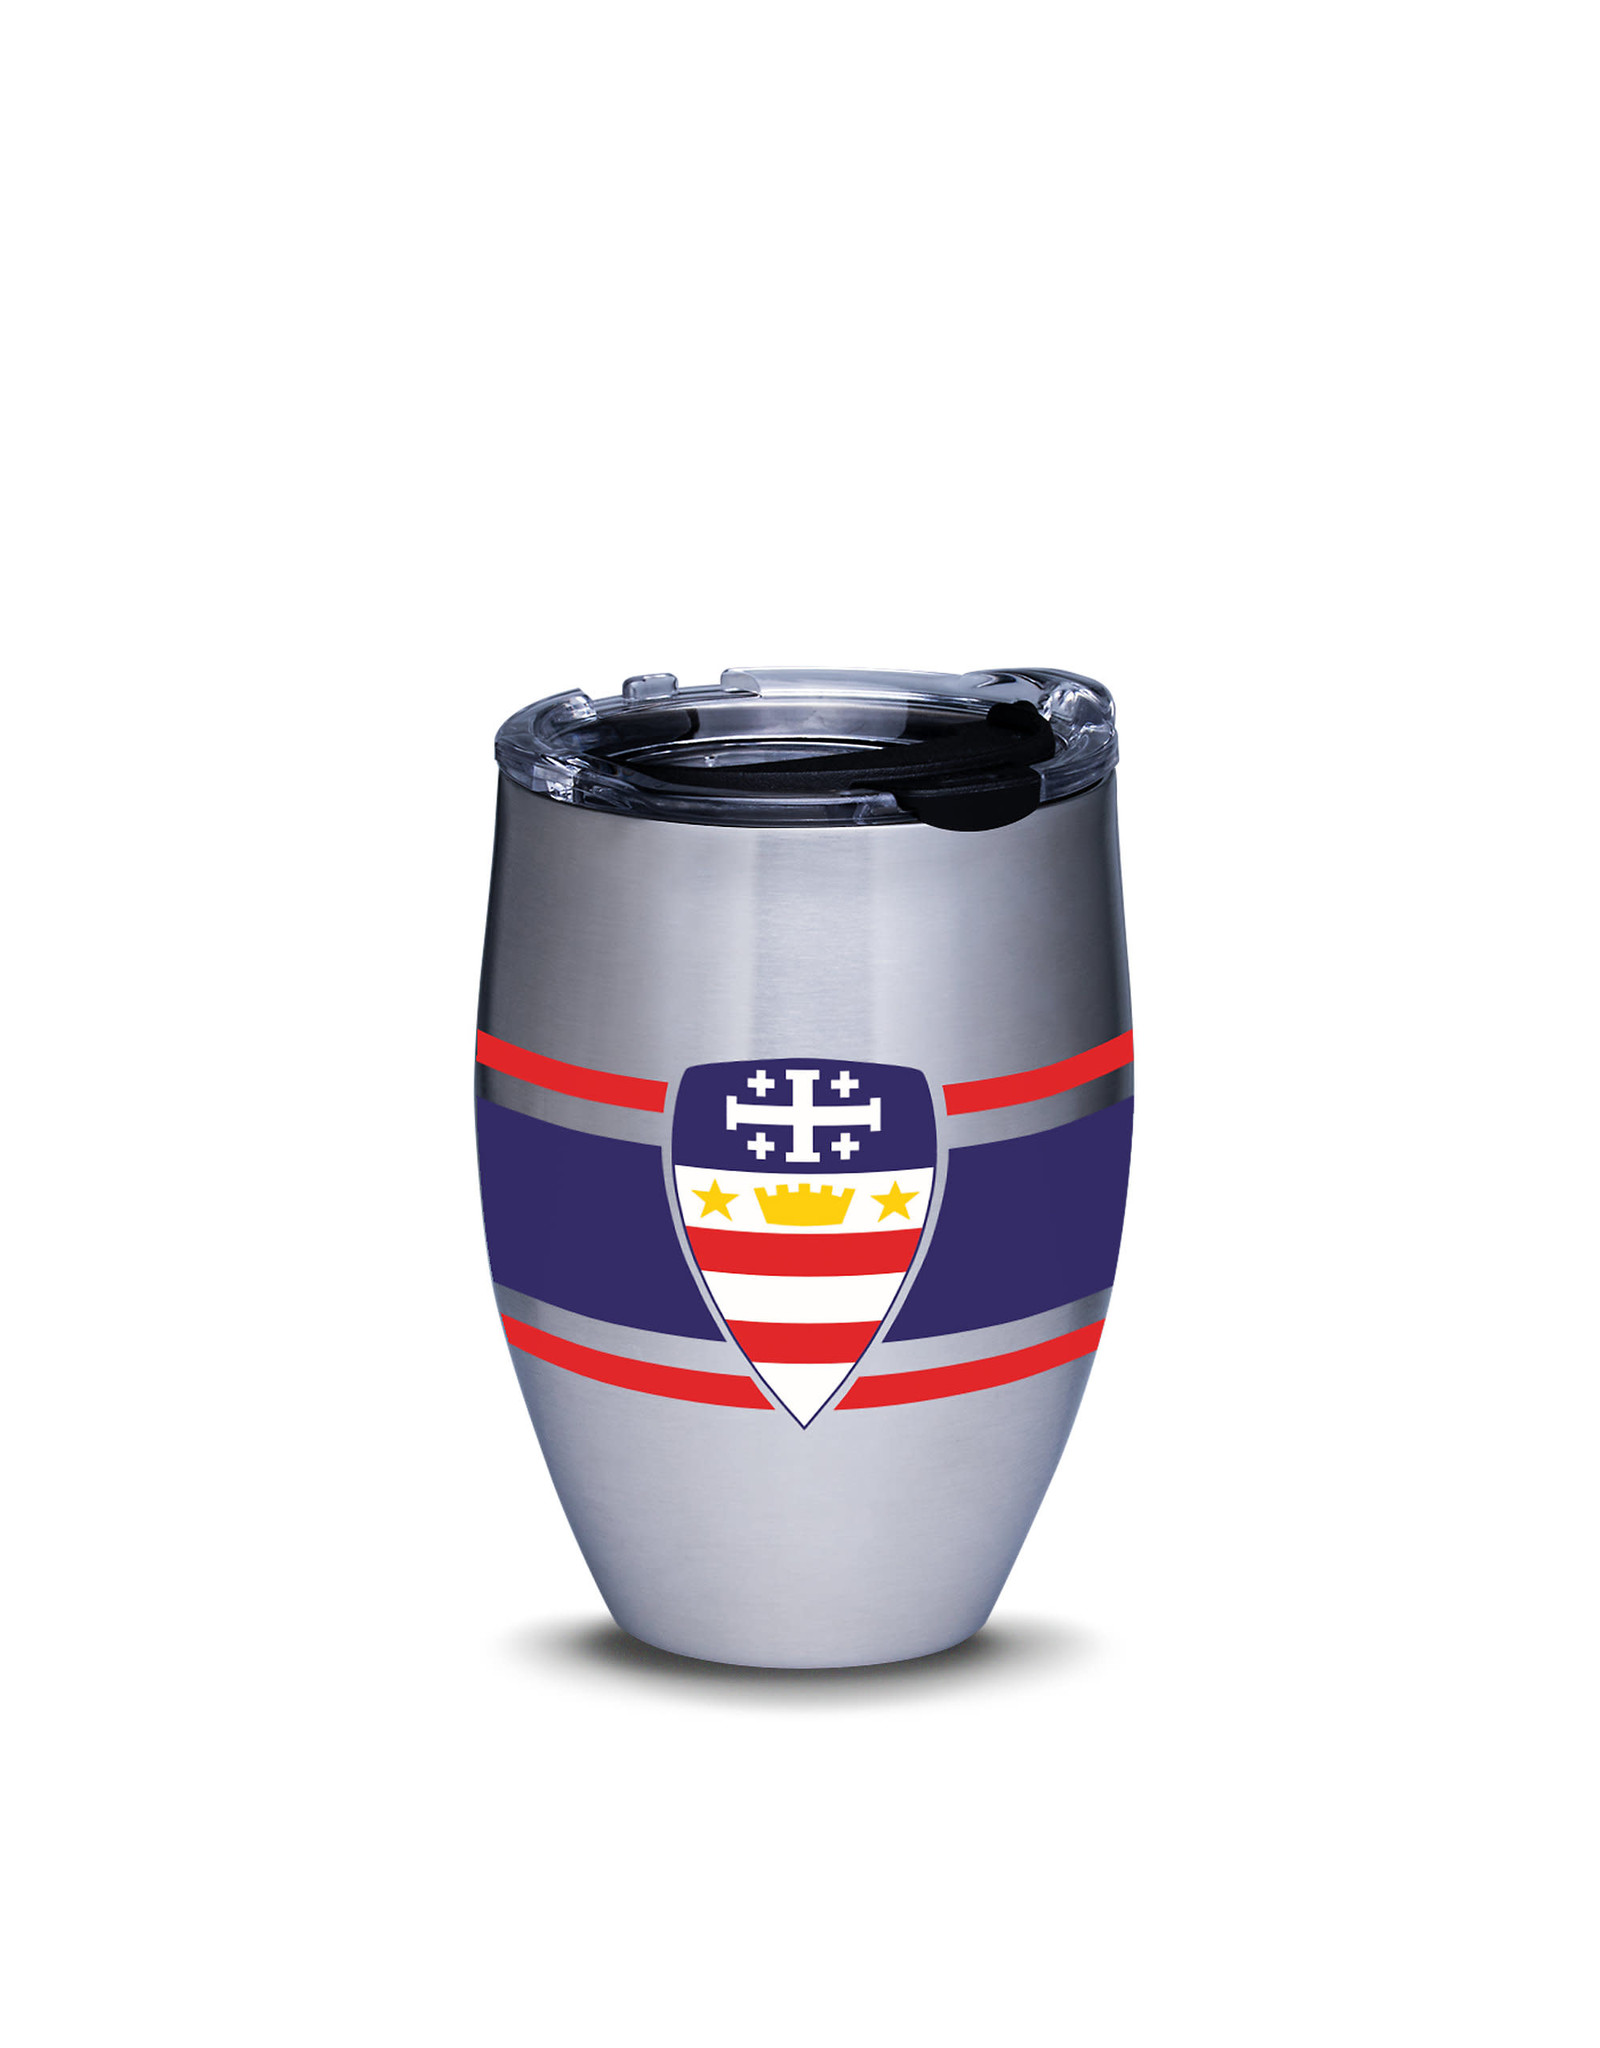 TERVIS HOT/COLD CUP STRIPES